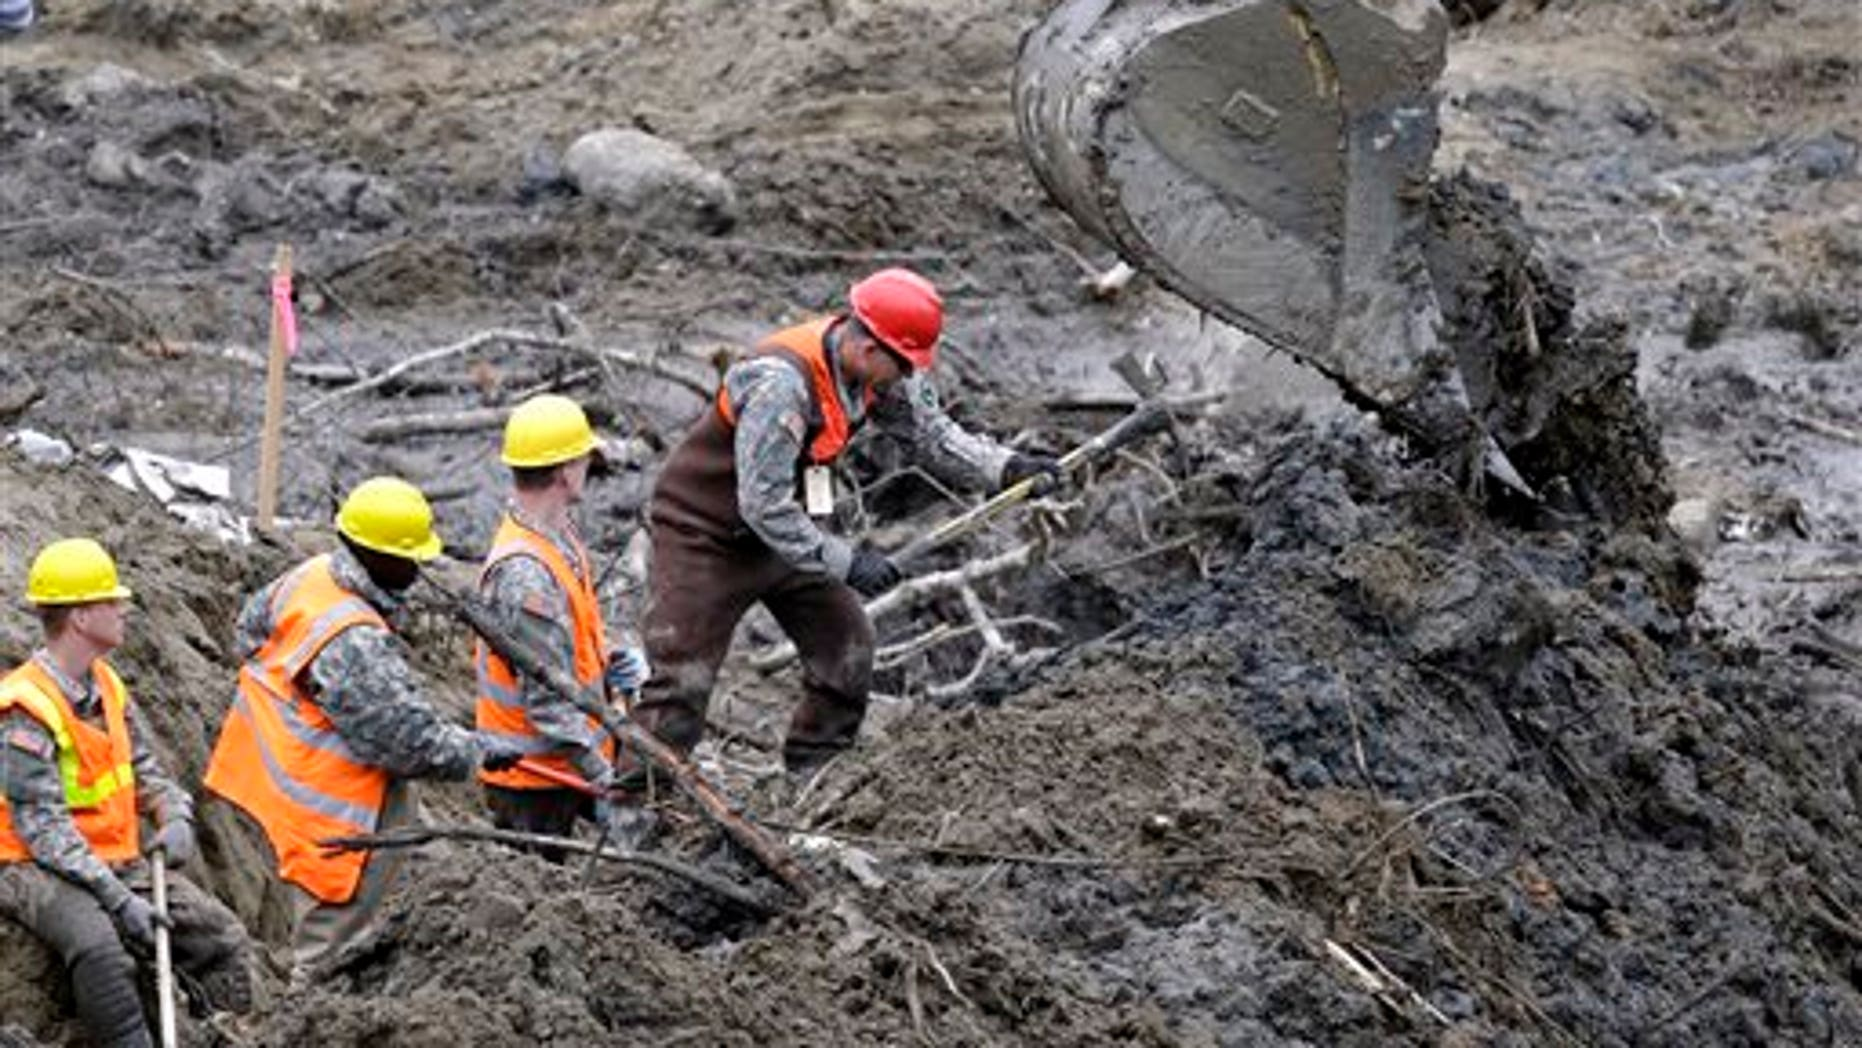 Workers use hand tools next to heavy equipment at the scene of a deadly mudslide in Oso, Wash., earlier this month.